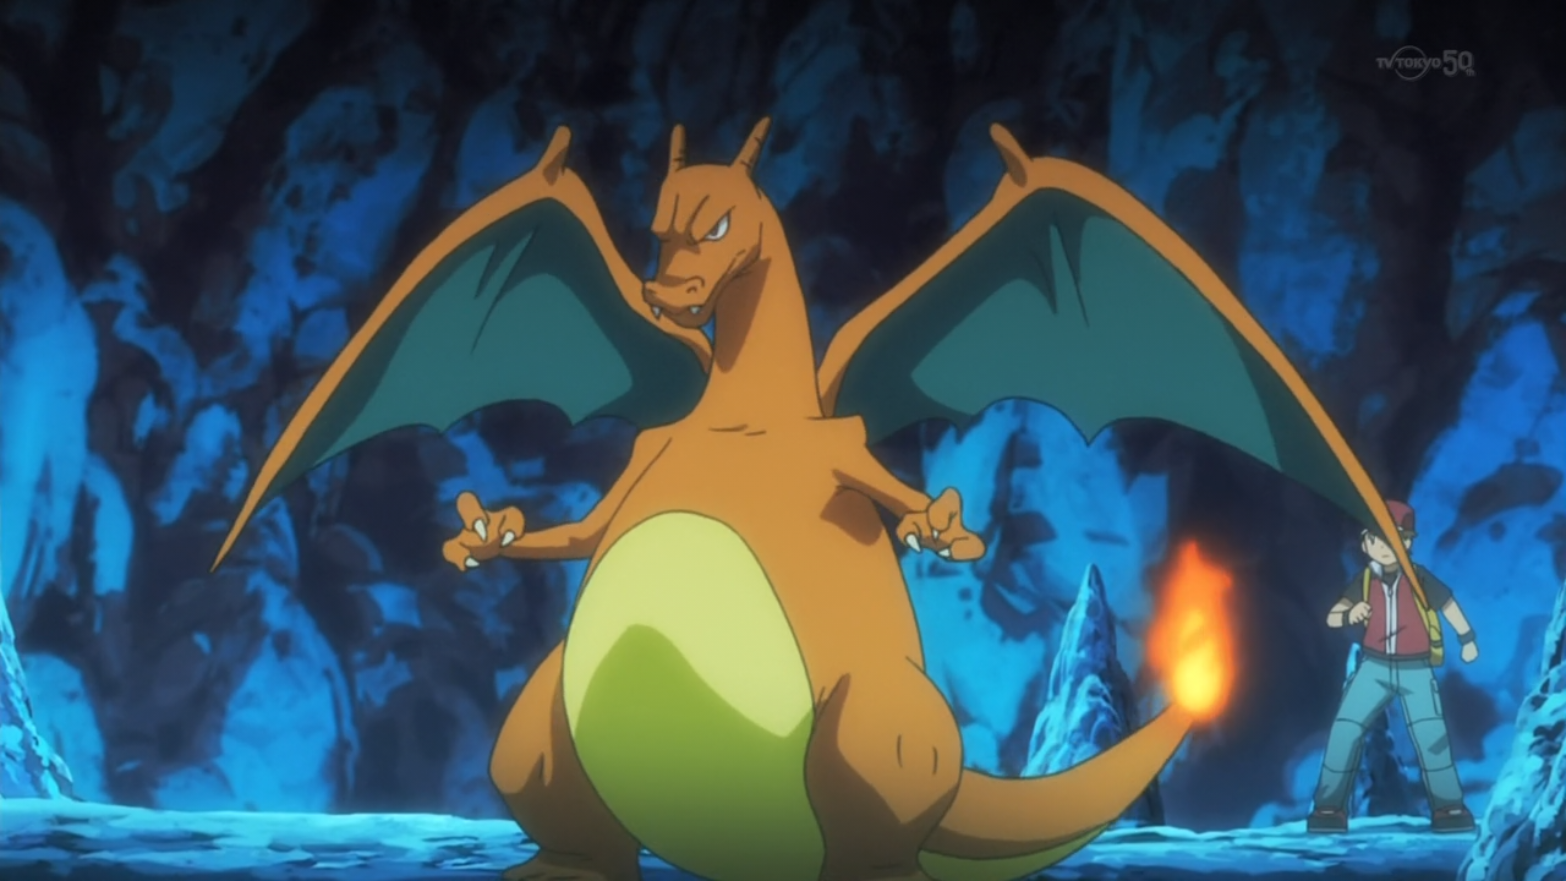 Red S Charizard Pok 233 Mon Wiki Fandom Powered By Wikia